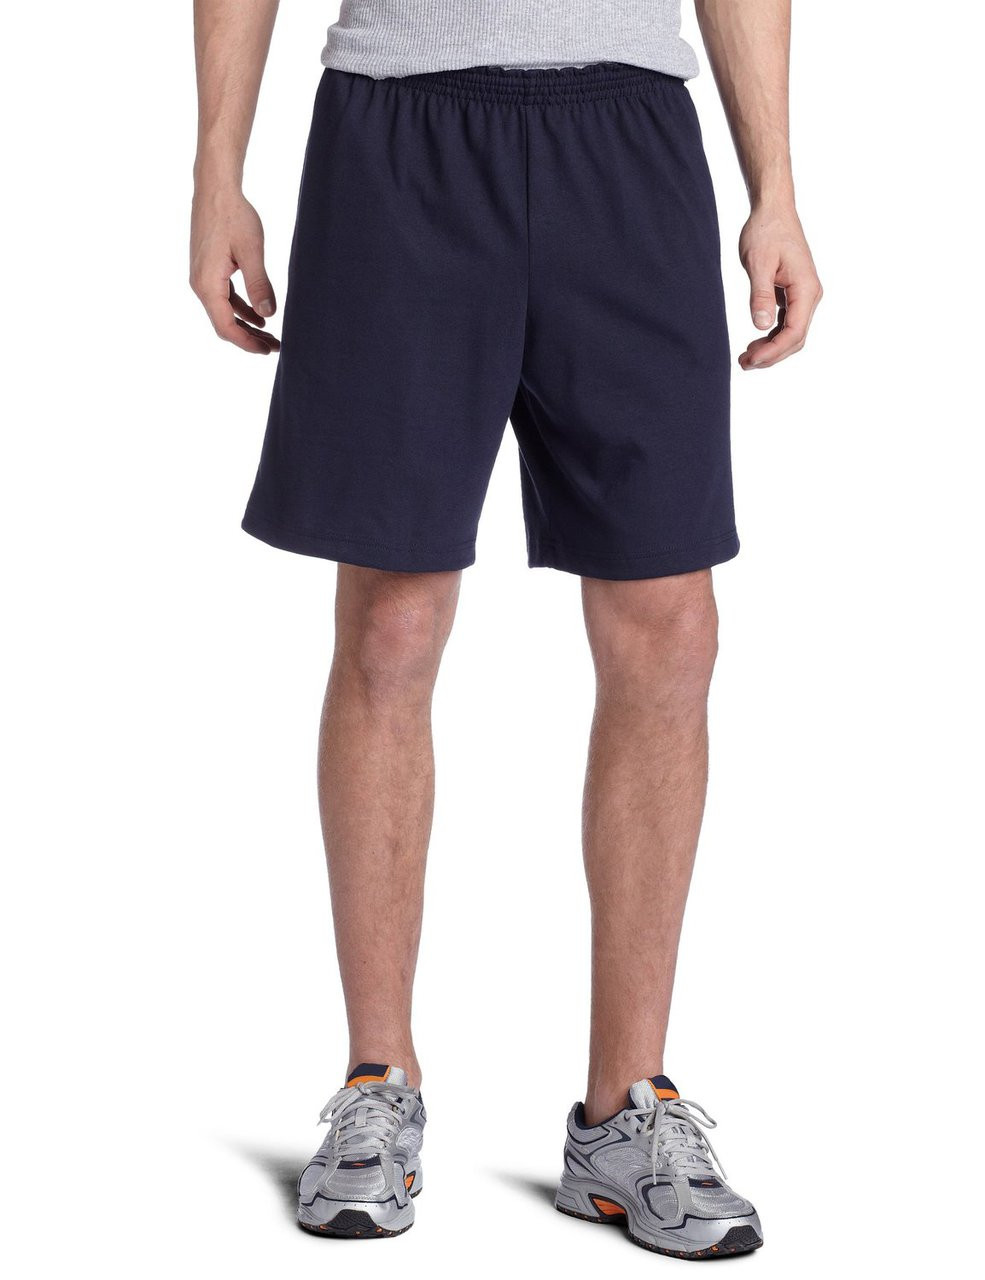 2ec53ae8fab7 Champion Men s Rugby Short - Navy - TOPSHOPPING USA